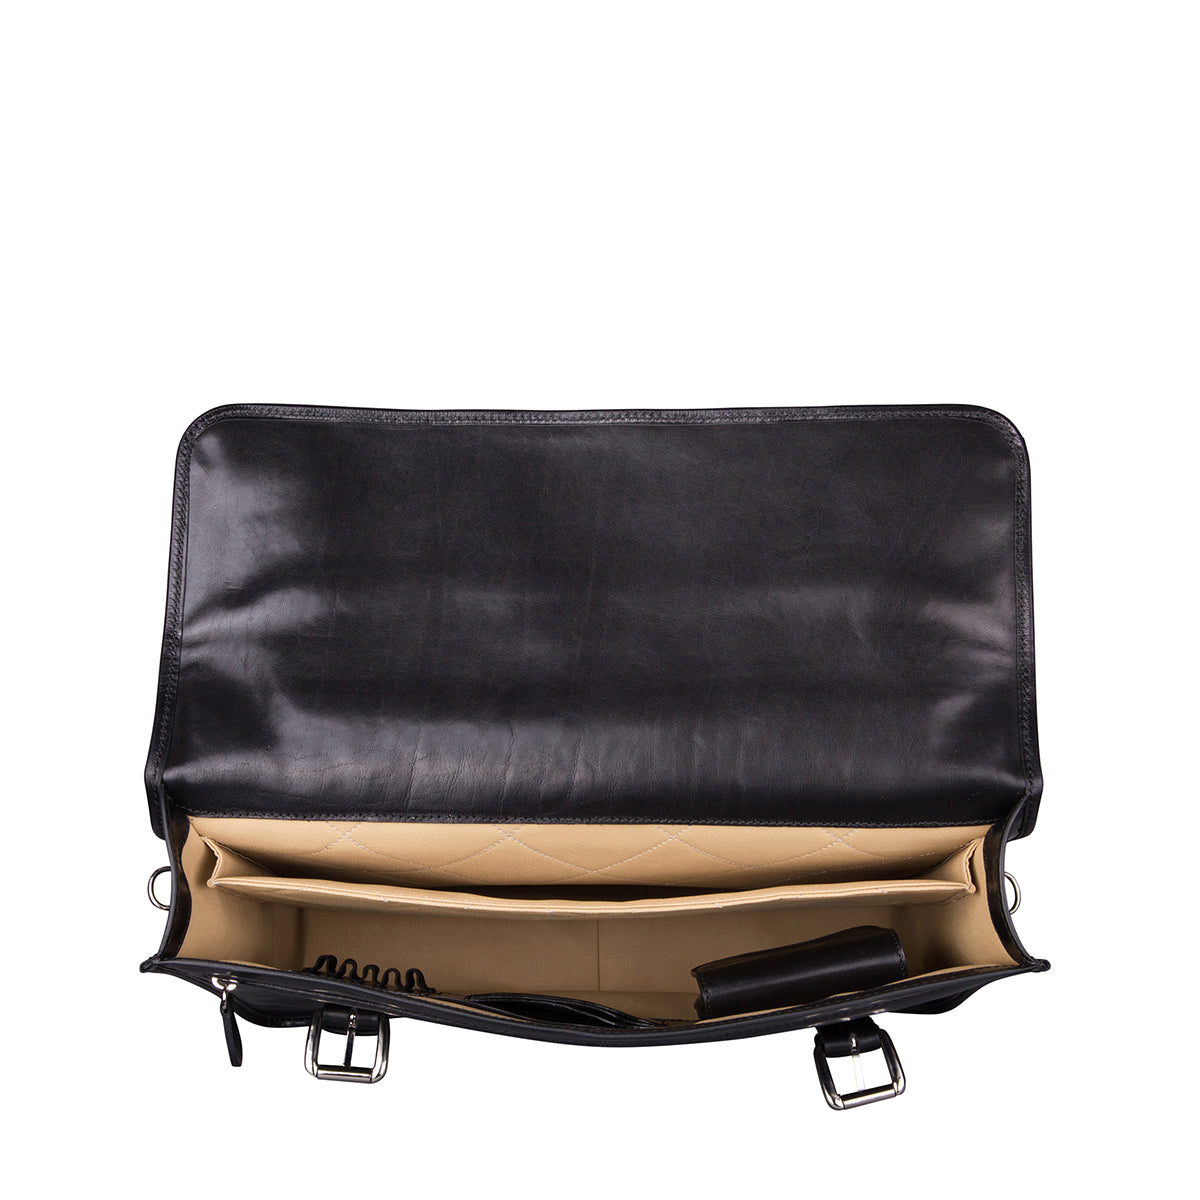 Image 3 of the 'Micheli' Black Veg-Tanned Leather Backpack Briefcase